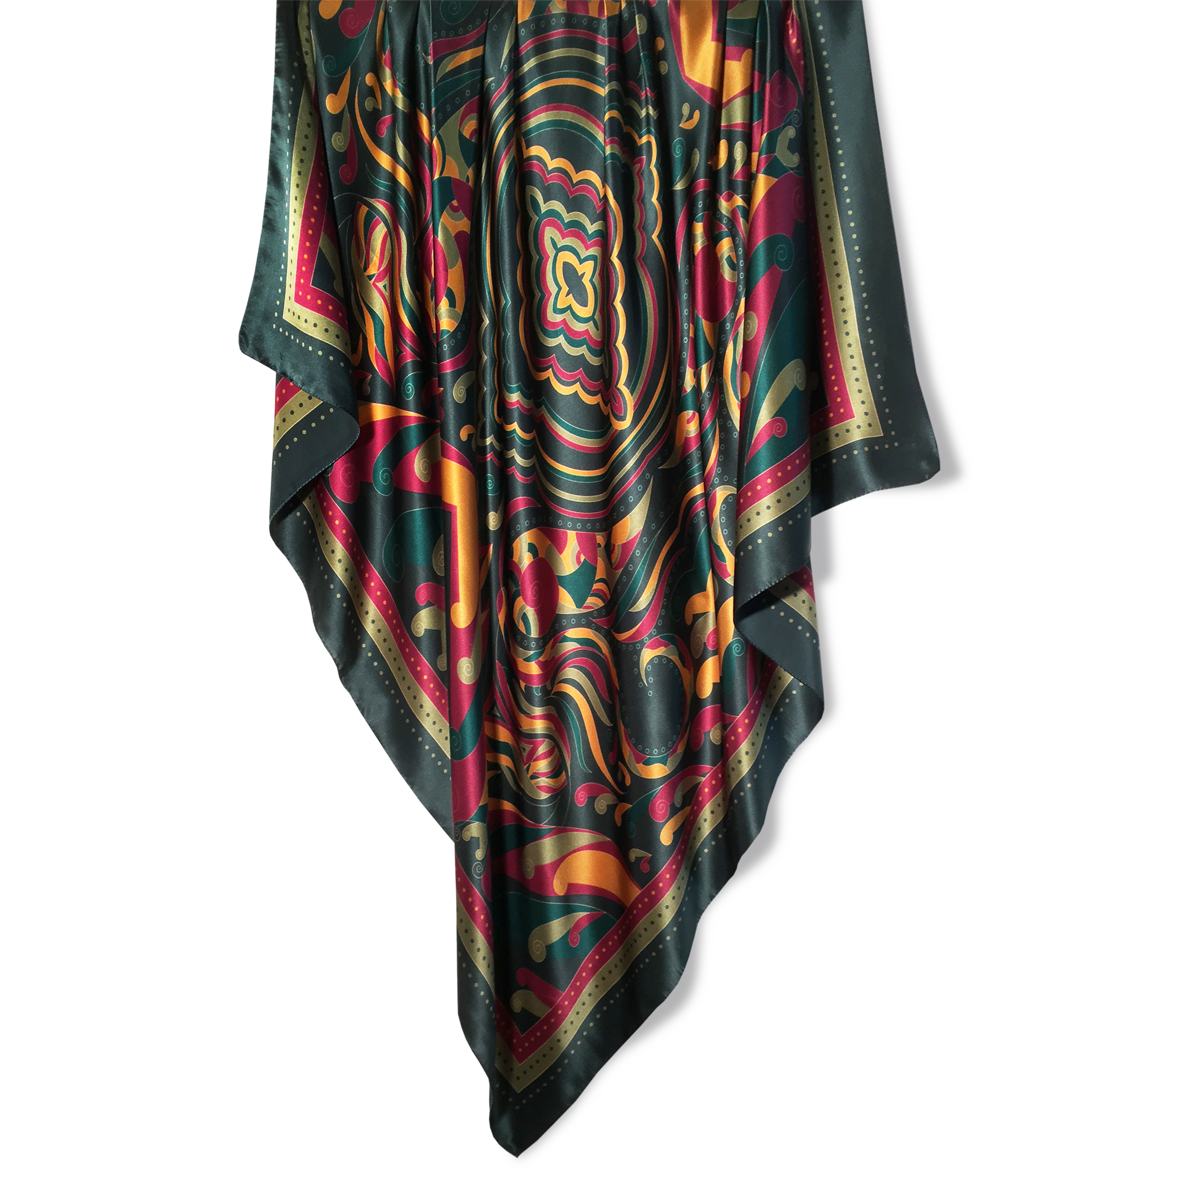 140x140cm Giant Square Scarf 100% Silk